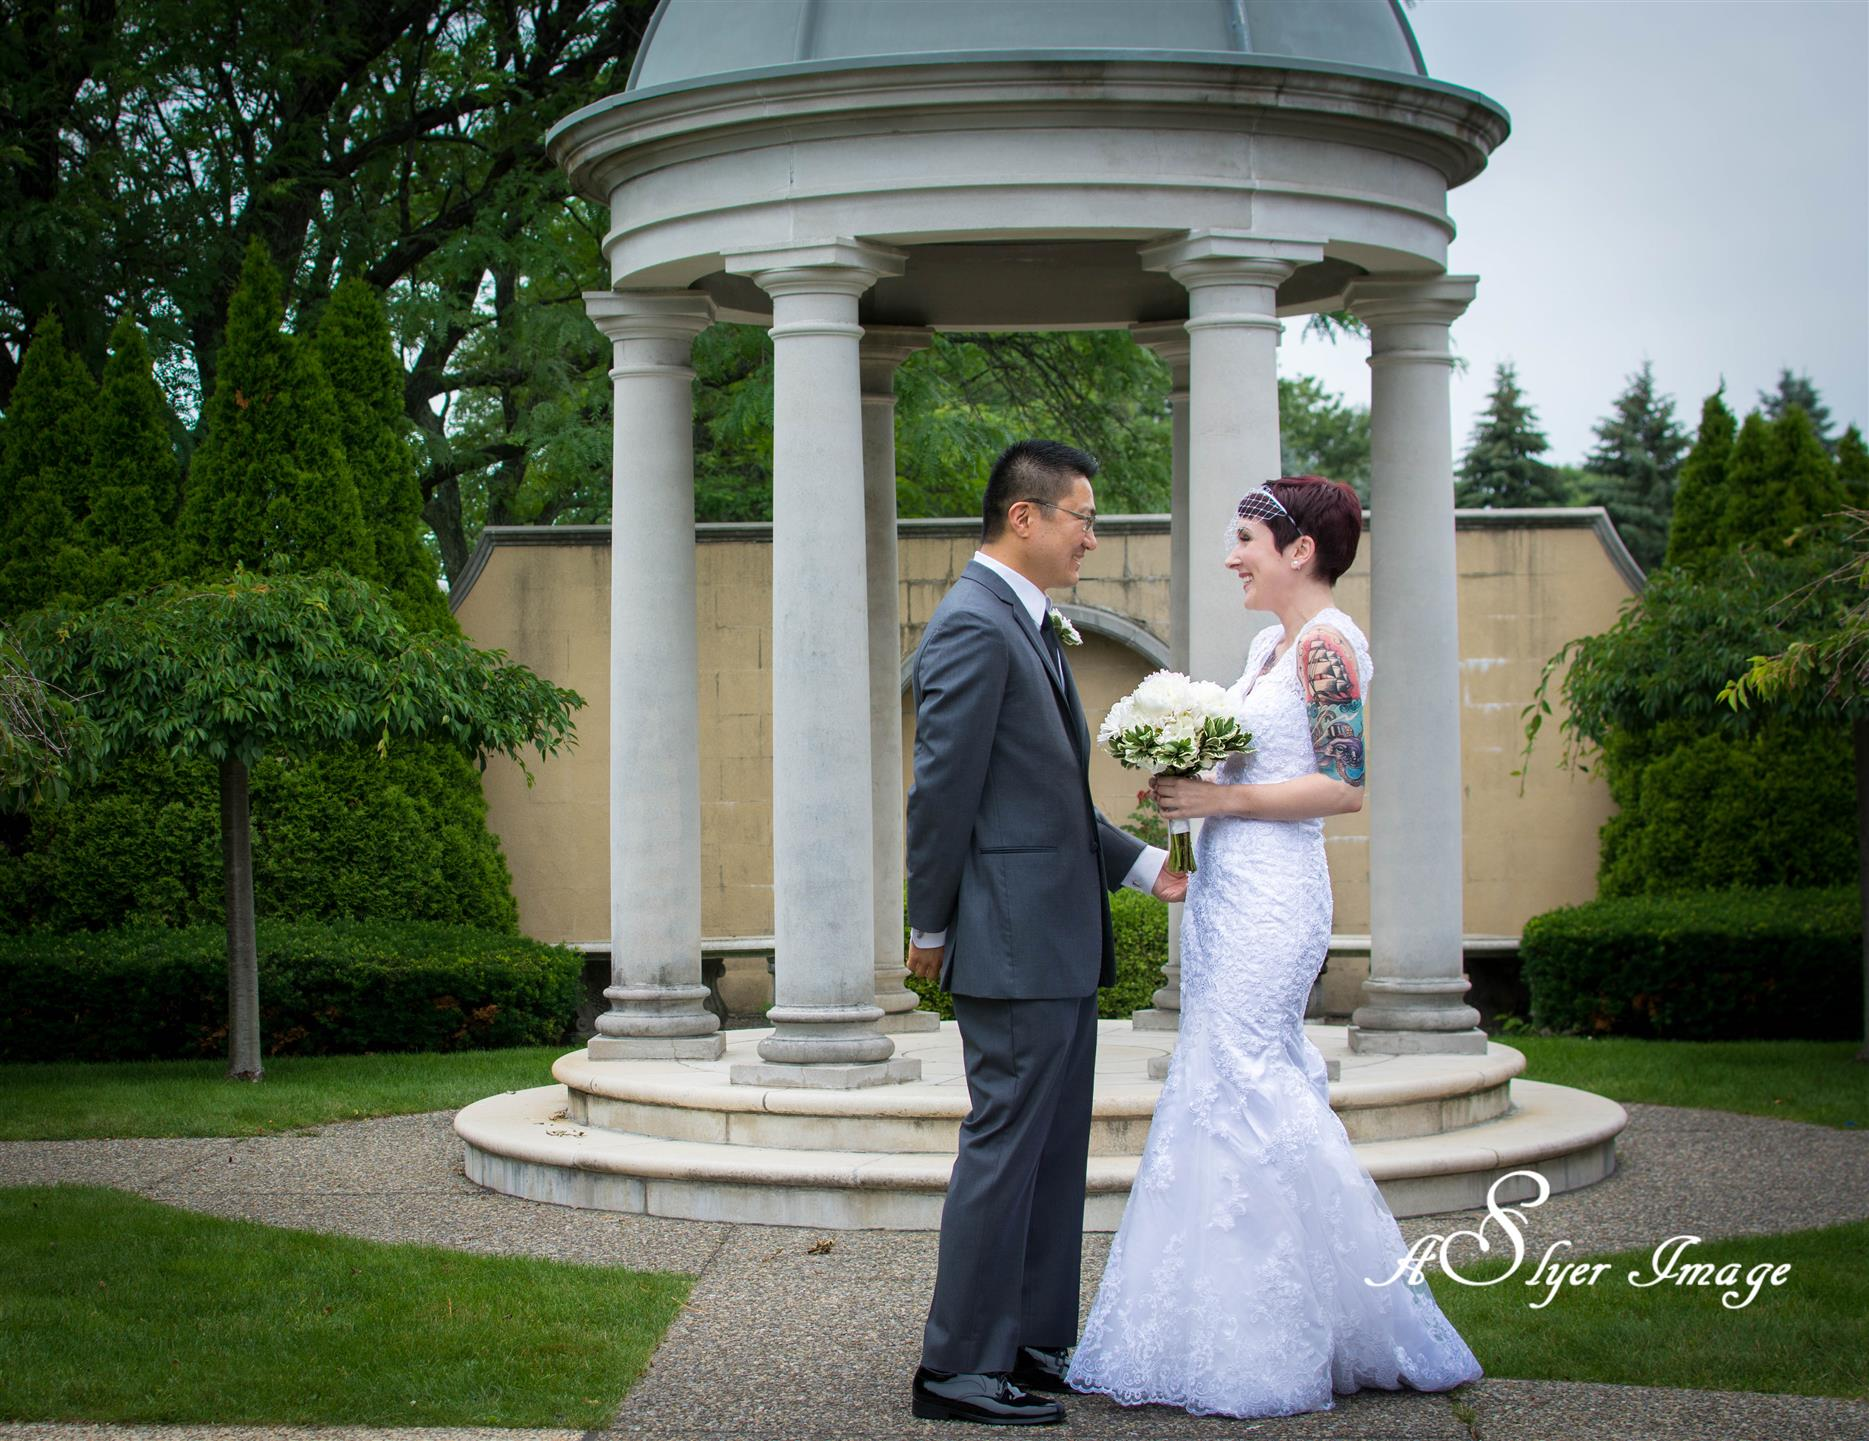 Bride and groom gazing at eachother in front of columned structure